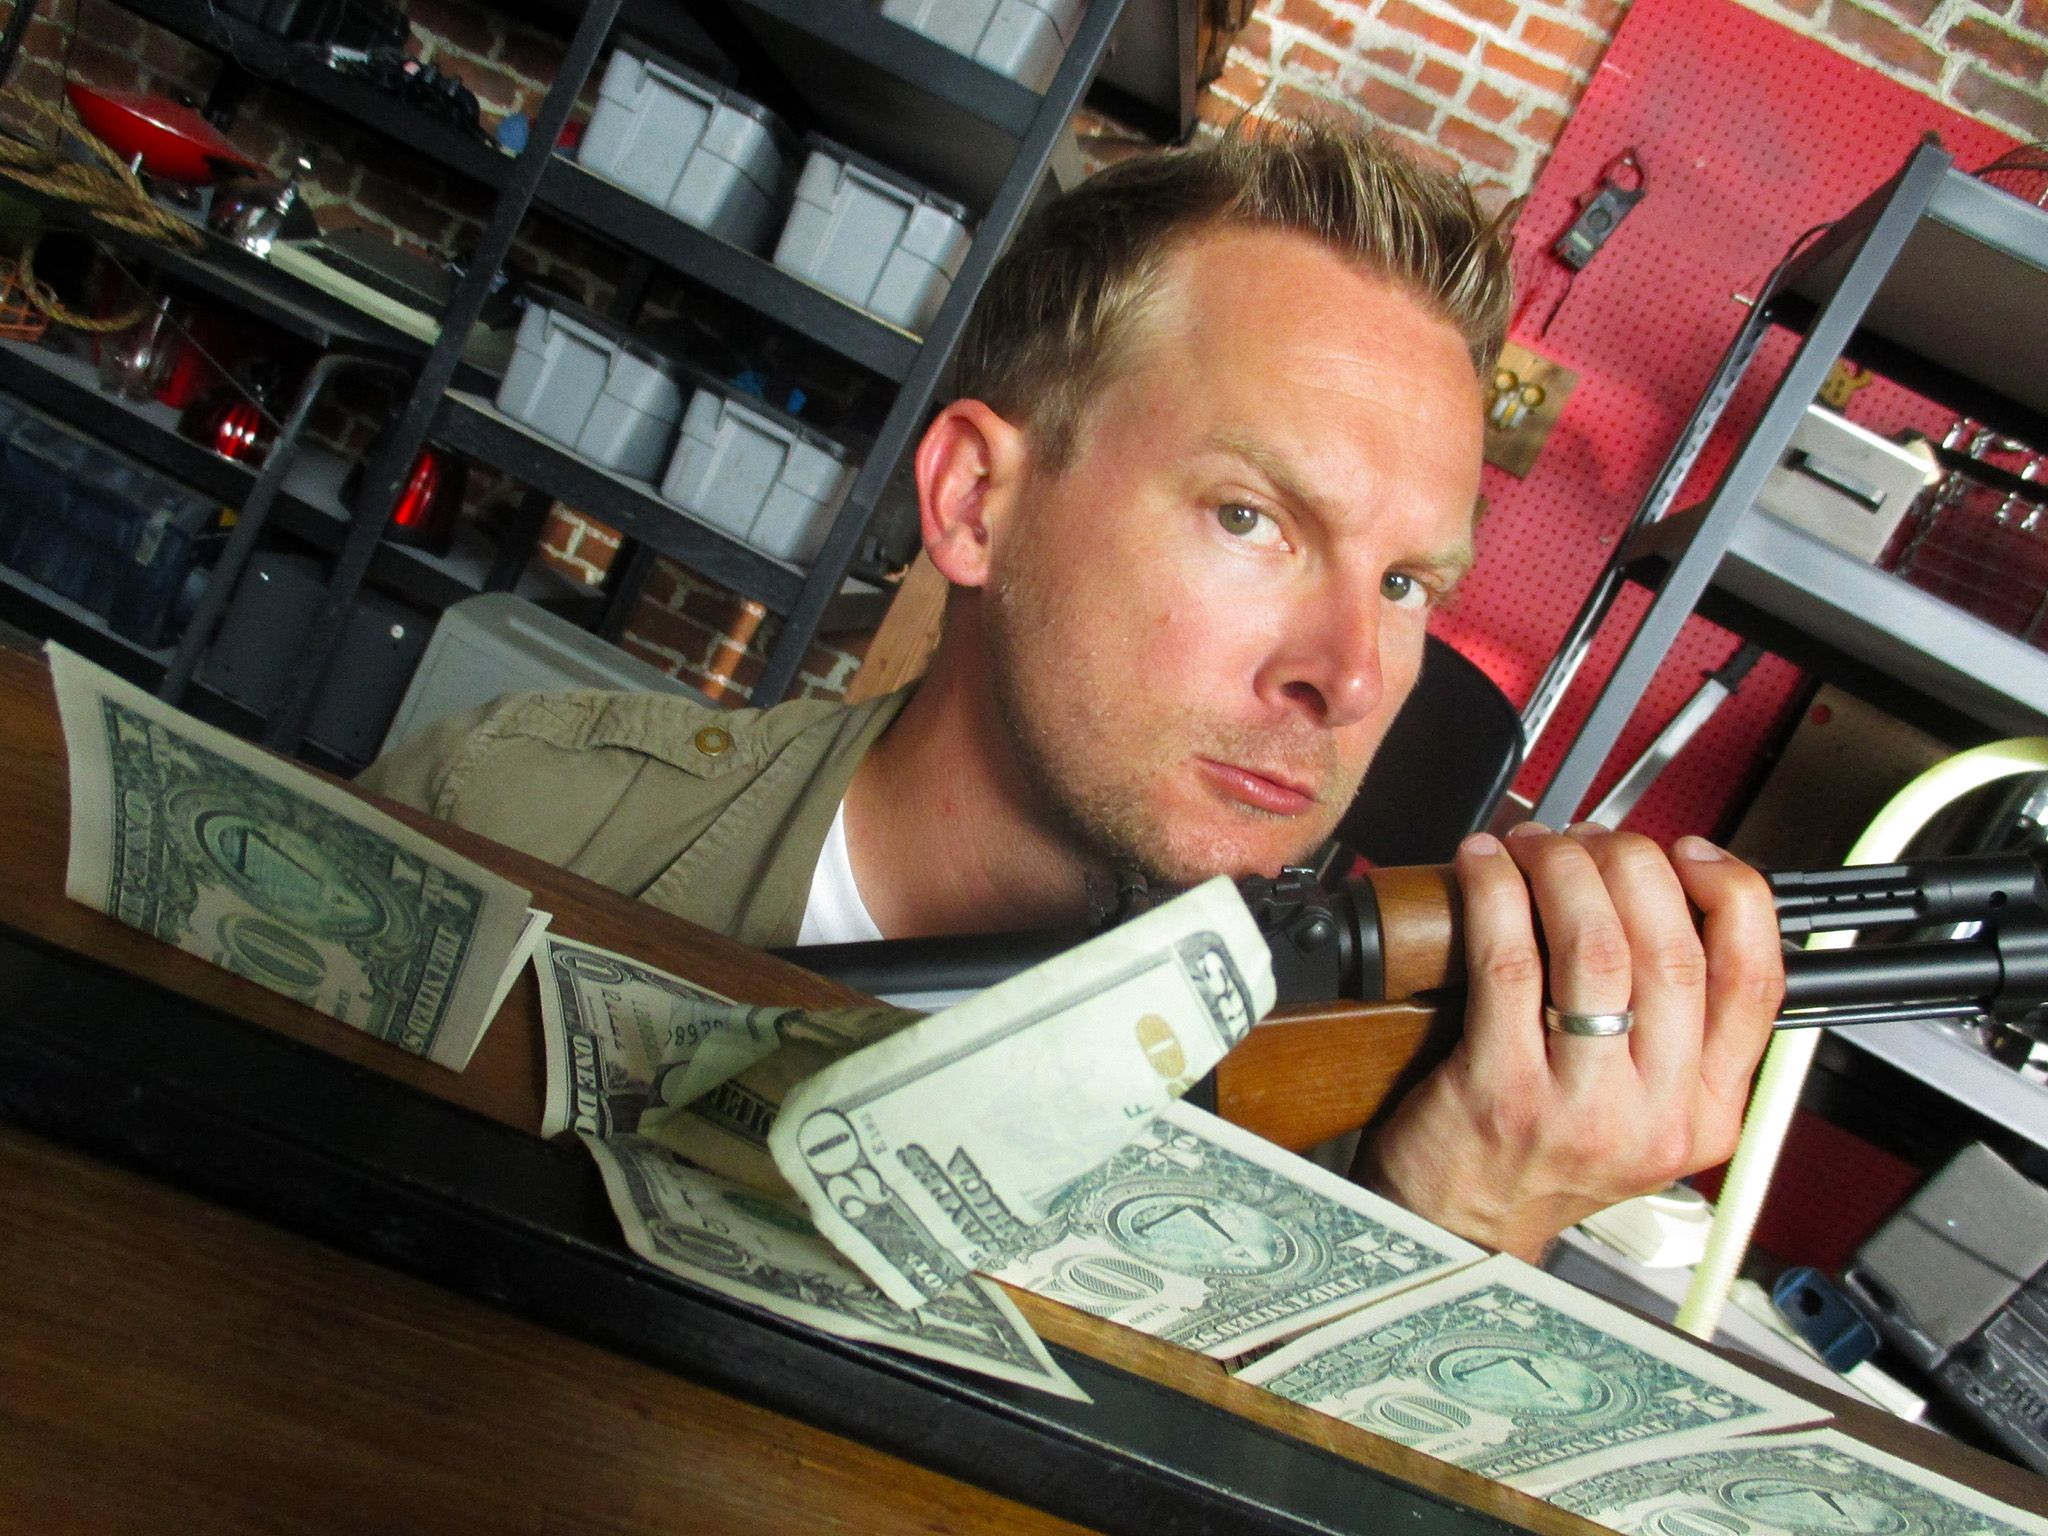 Los Angeles, CA.: In the workshop, Brian poses with a rifle next to a line of bills and a magnet.... [Photo of the day - april 2015]